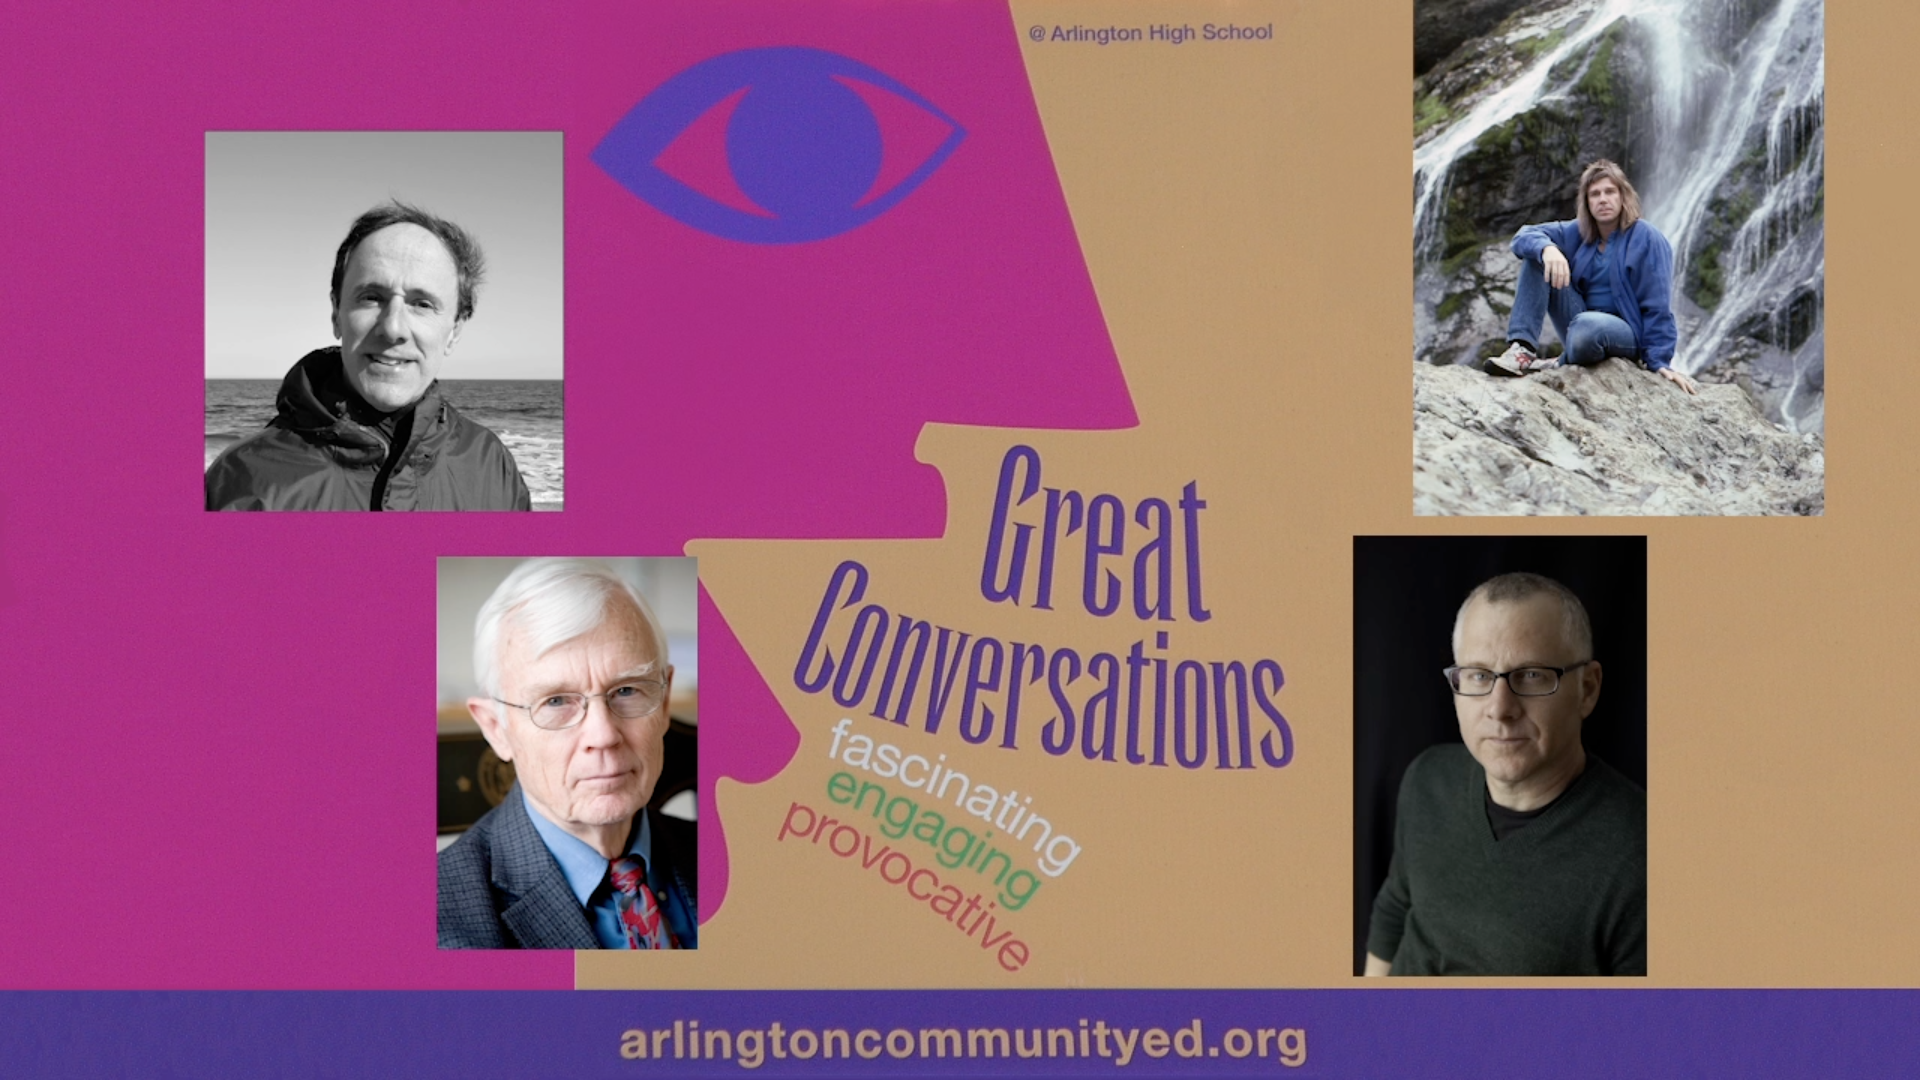 Great Conversations: Fall 2013